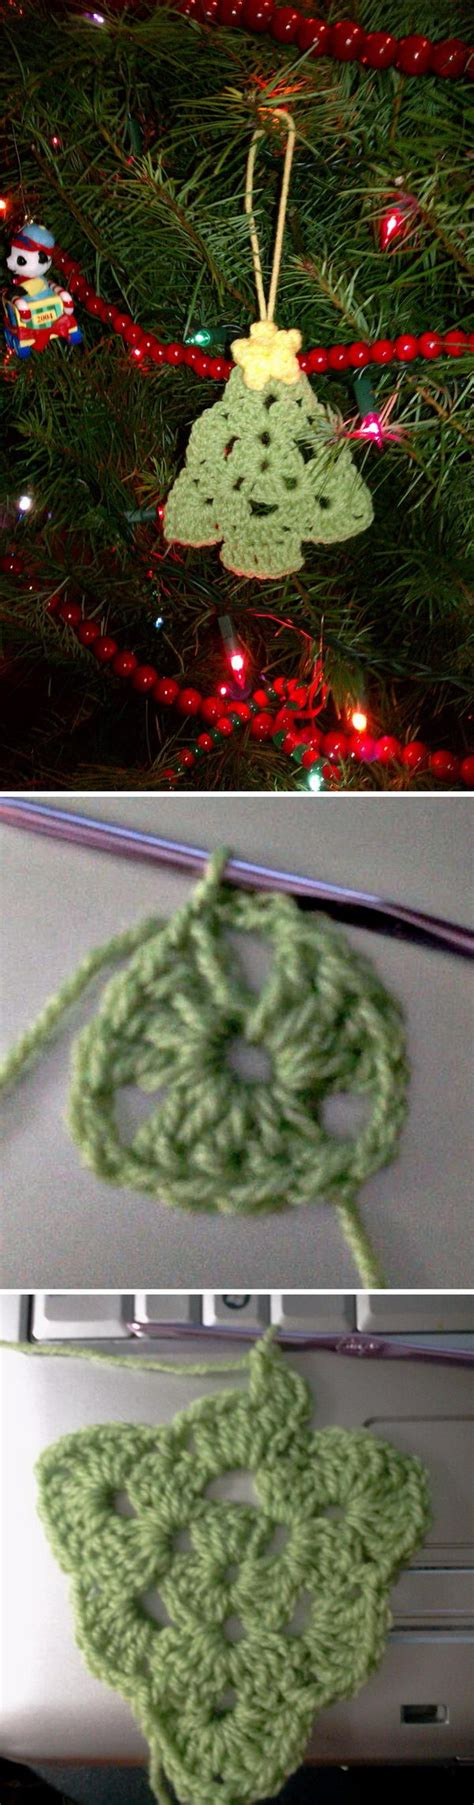 granny christmas tree pattern 25 free christmas crochet patterns for beginners hative